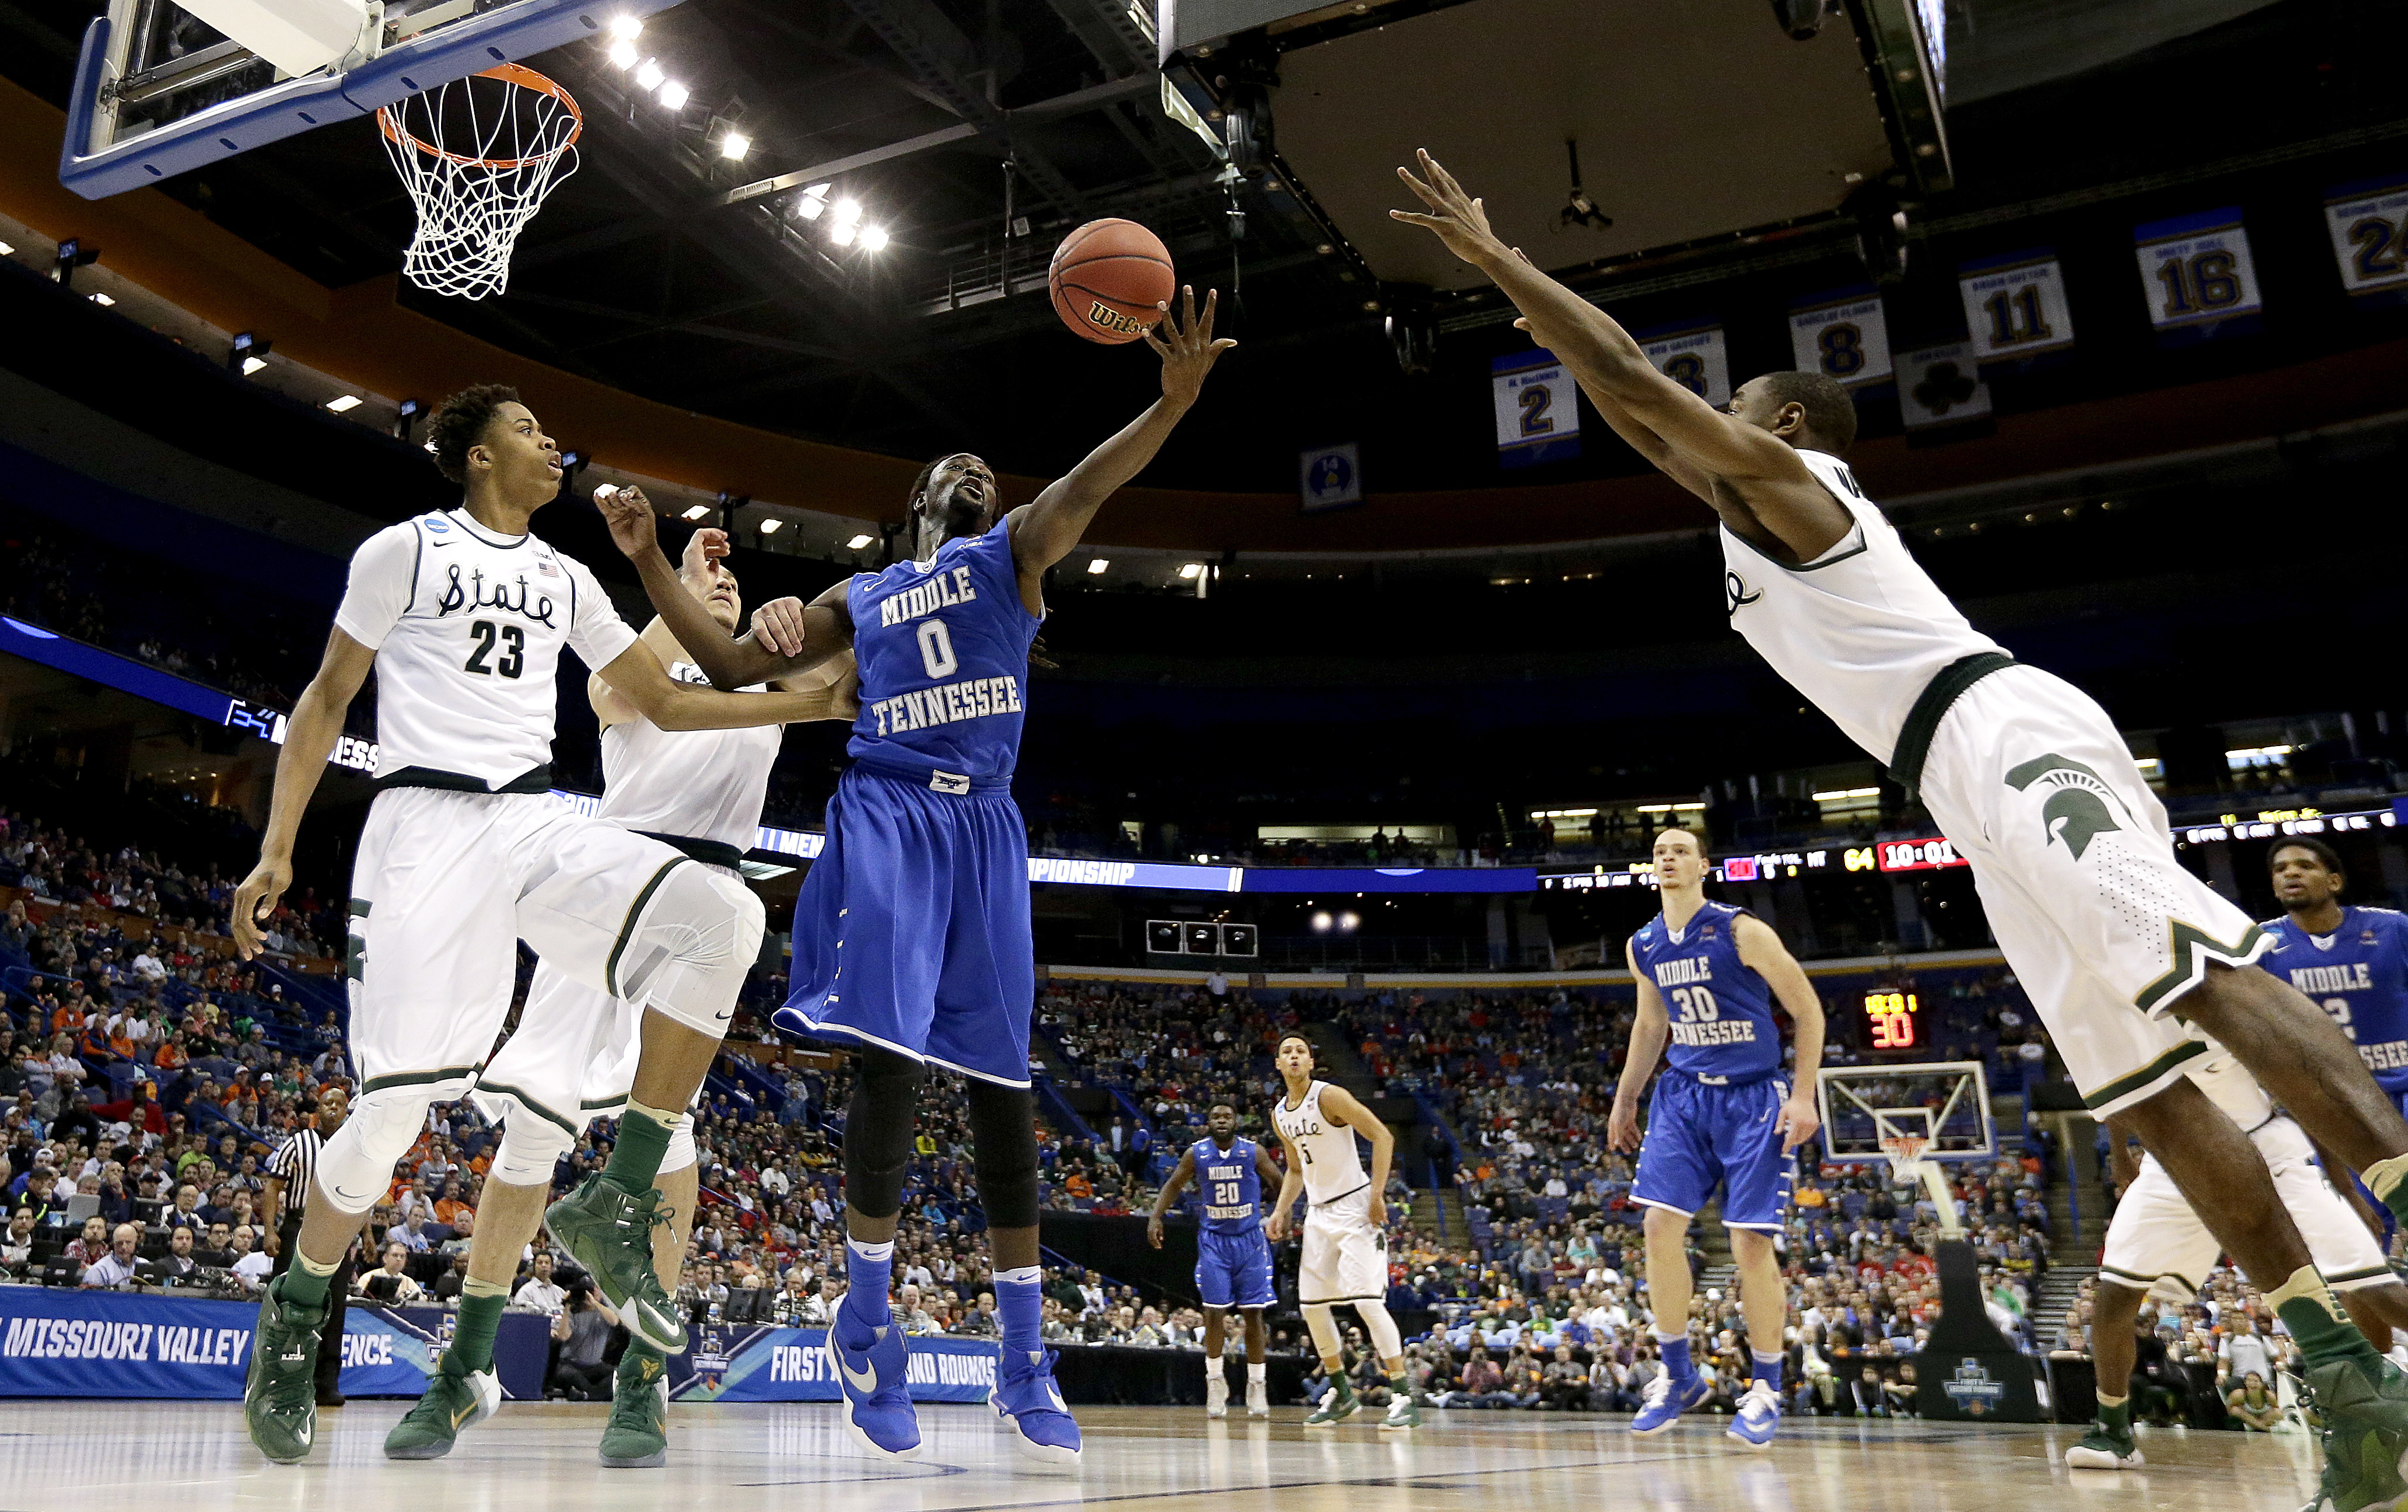 Middle Tennessee's Darnell Harris (0) beats Michigan State's Deyonta Davis (23) to a rebound during the second half of a first-round men's college basketball game in the NCAA Tournament, Friday, March 18, 2016, in St. Louis. Middle Tennessee won 90-81. (A